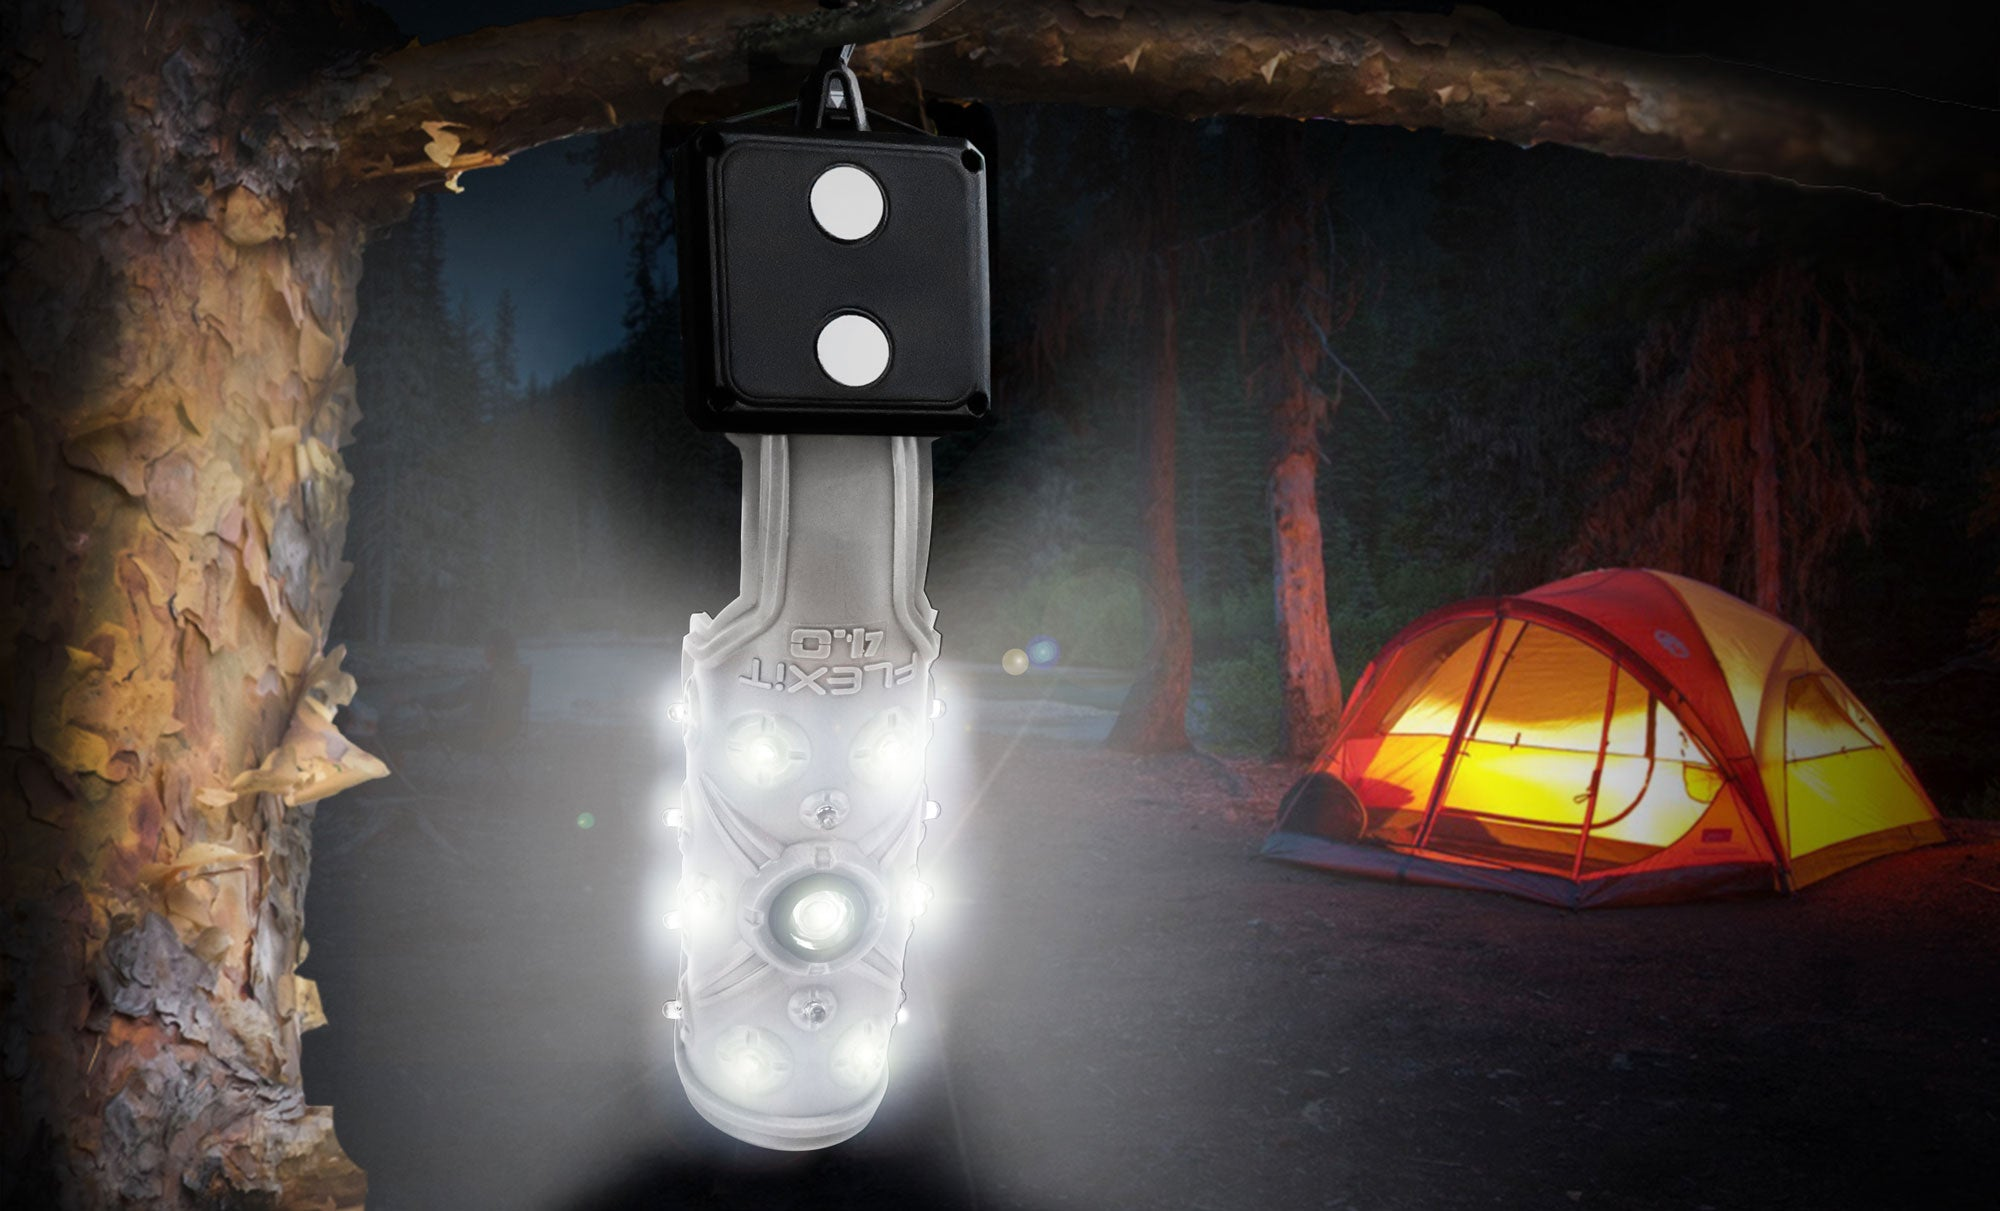 STKR Concepts - FLEXIT 4.0 Flexible Flashlight used for Camping